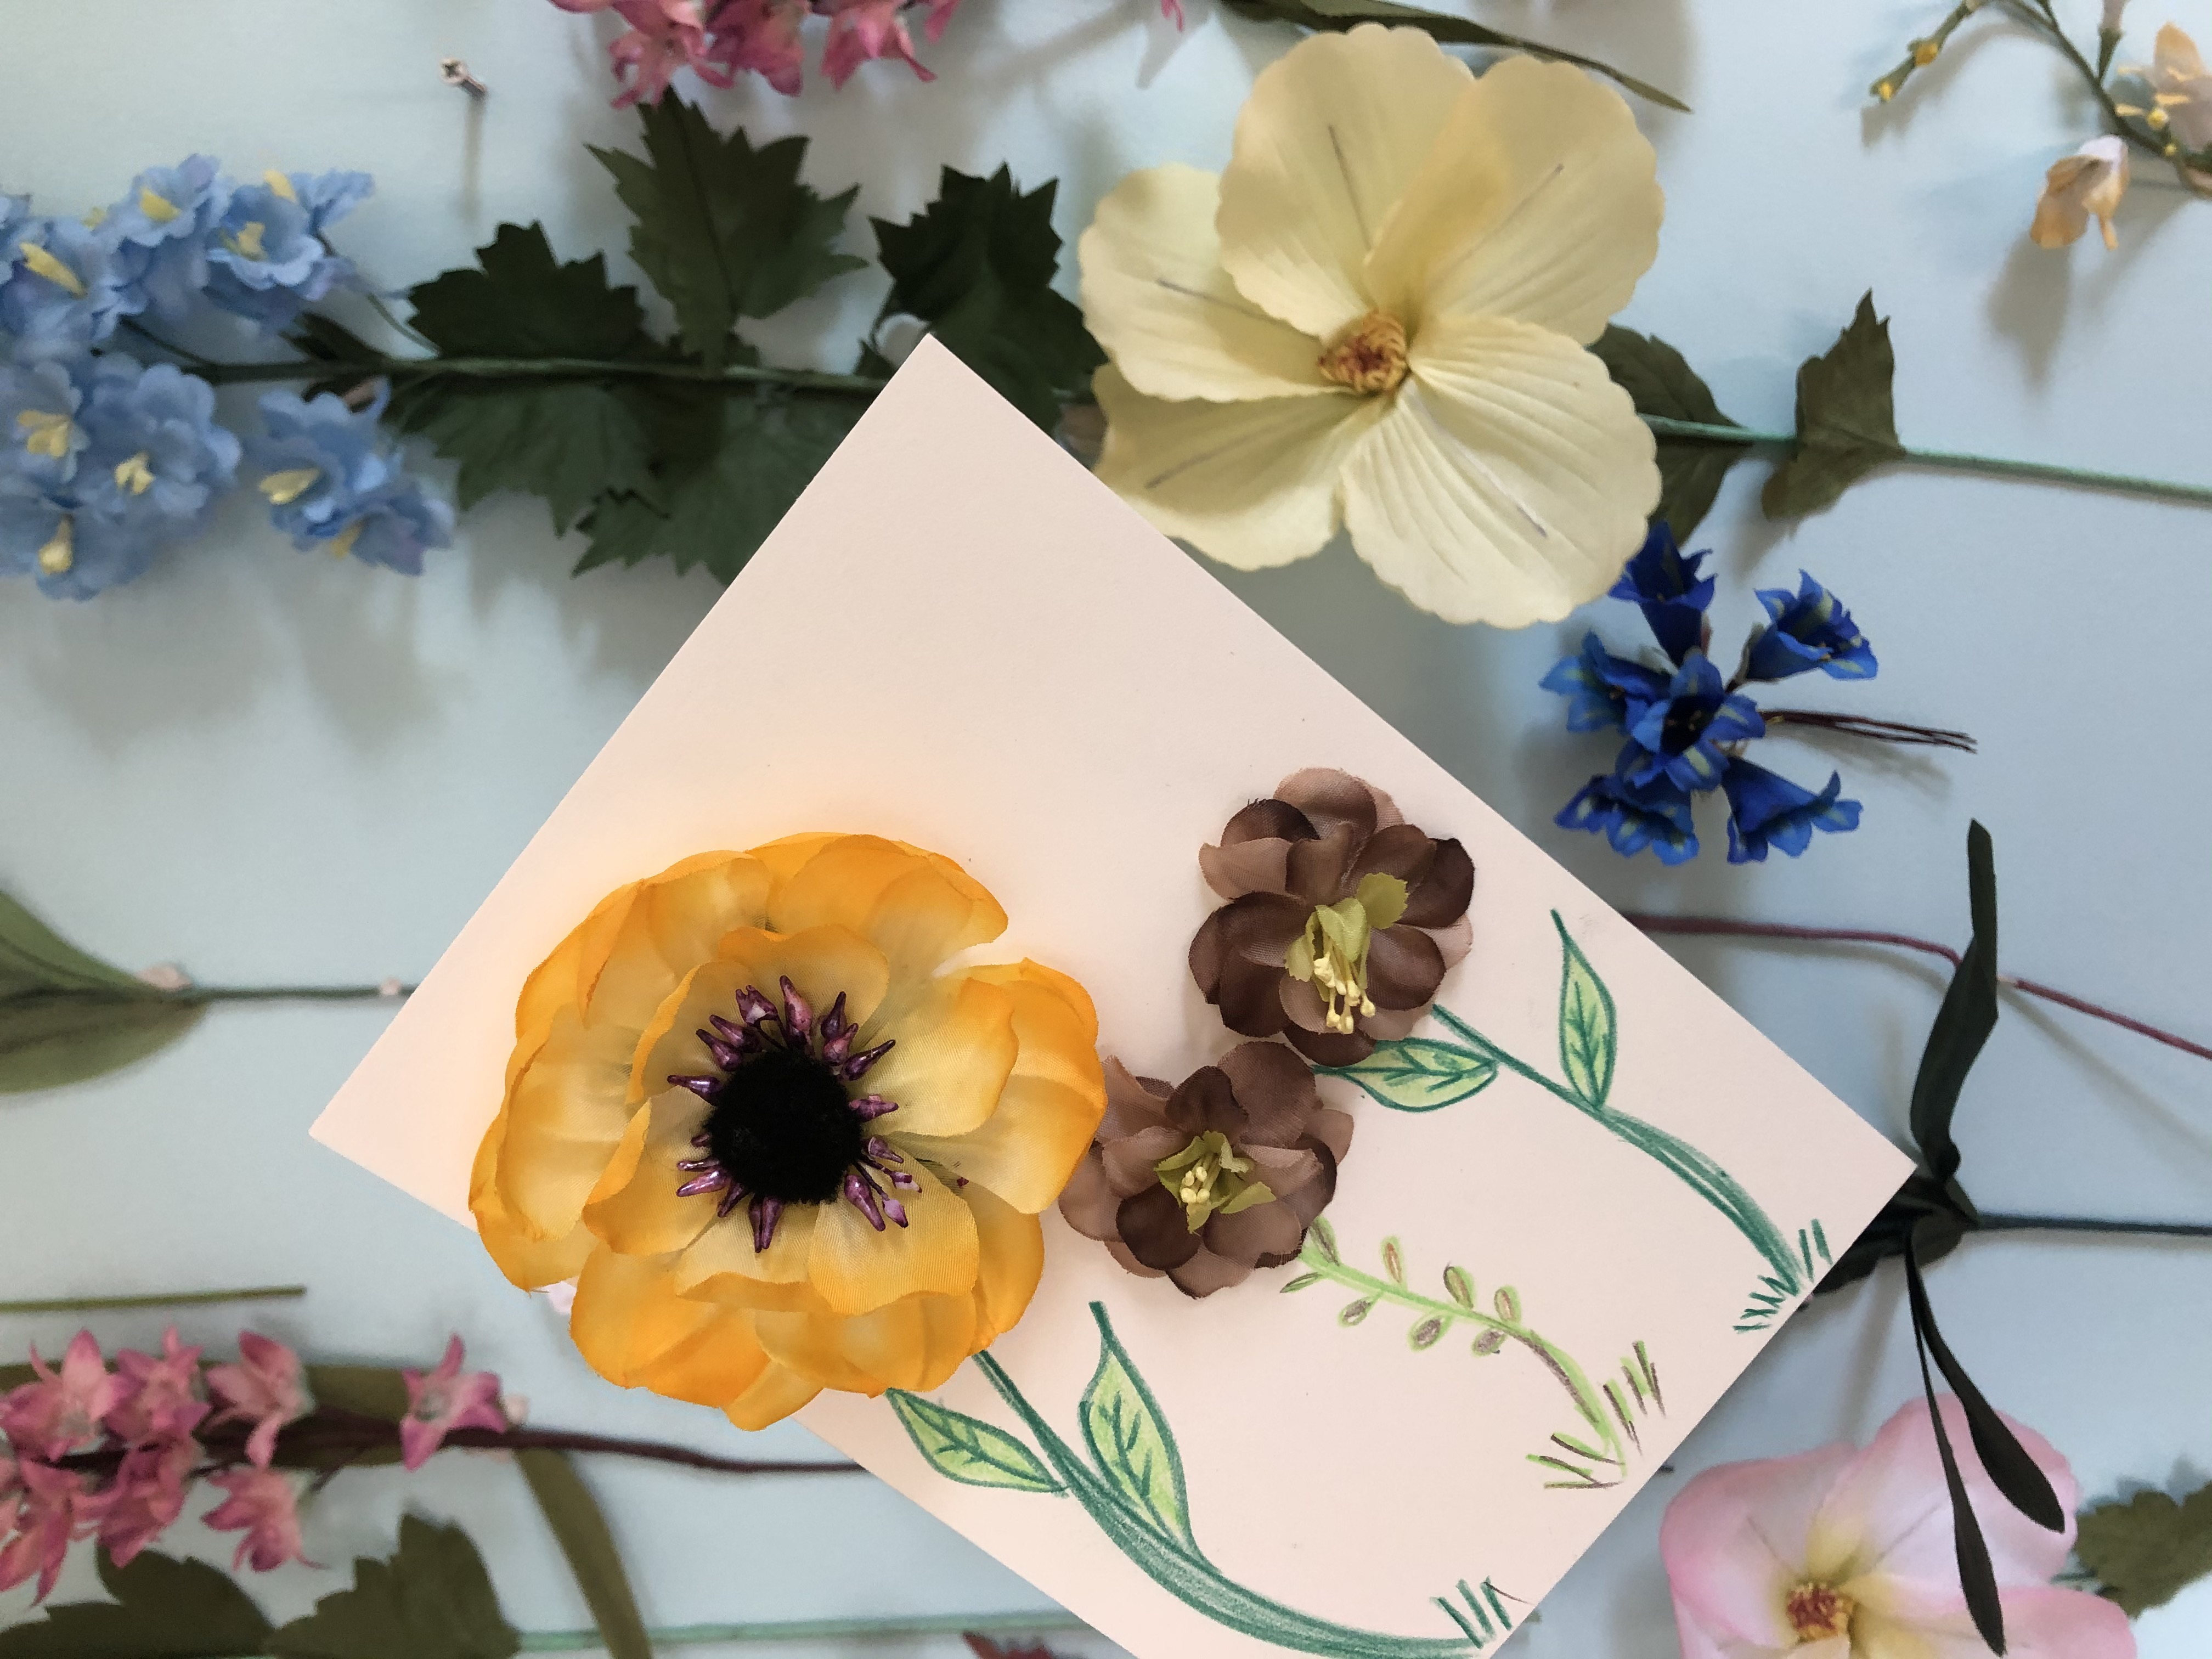 Virtual Card-Making Workshop with Flowers at BloomAgain Bklyn